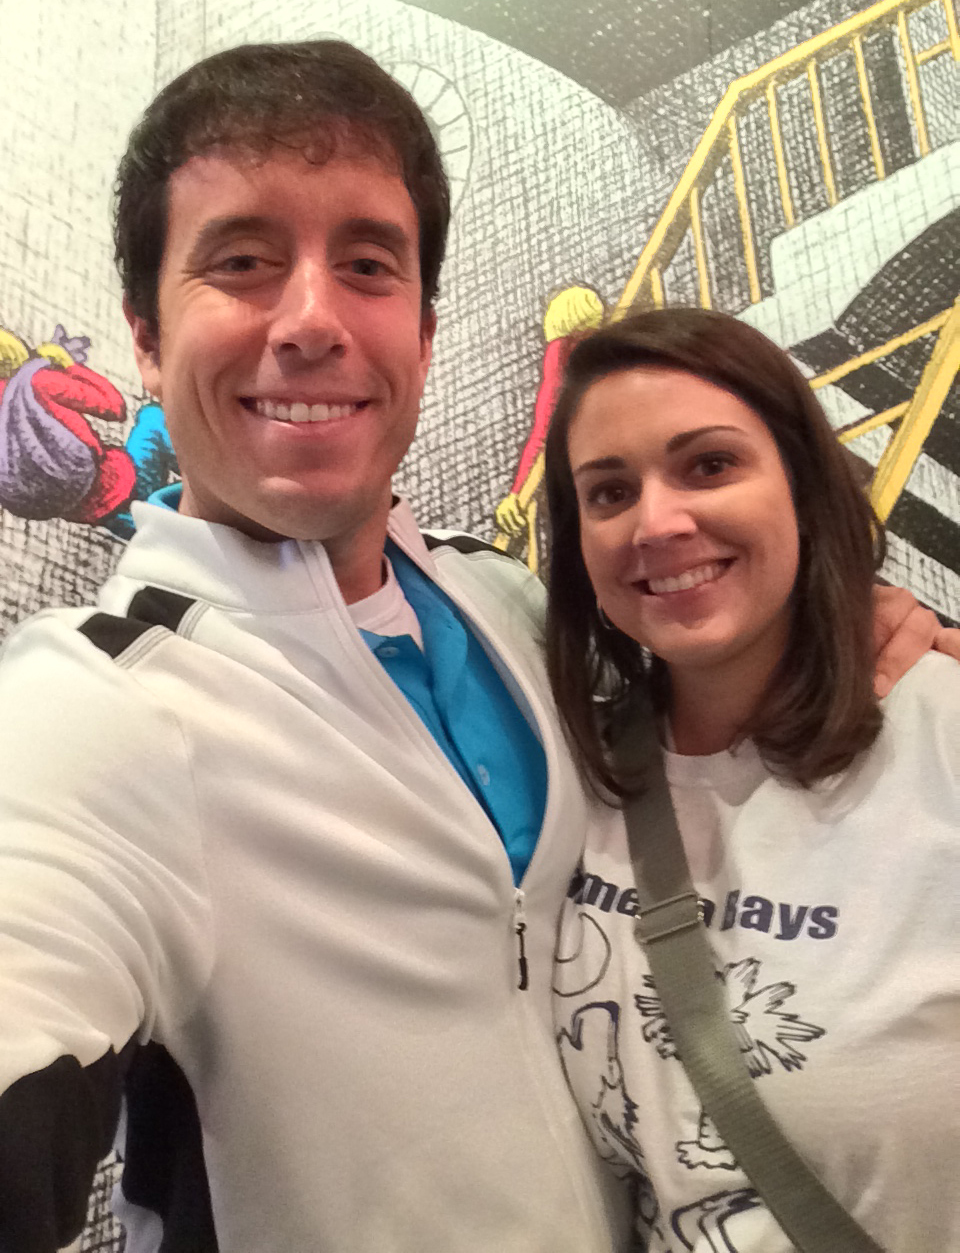 Sidney invited me to help out on a field trip. This is her and I this morning at Wonderworks. All students and teachers wore their Palmetto Bays t-shirts.